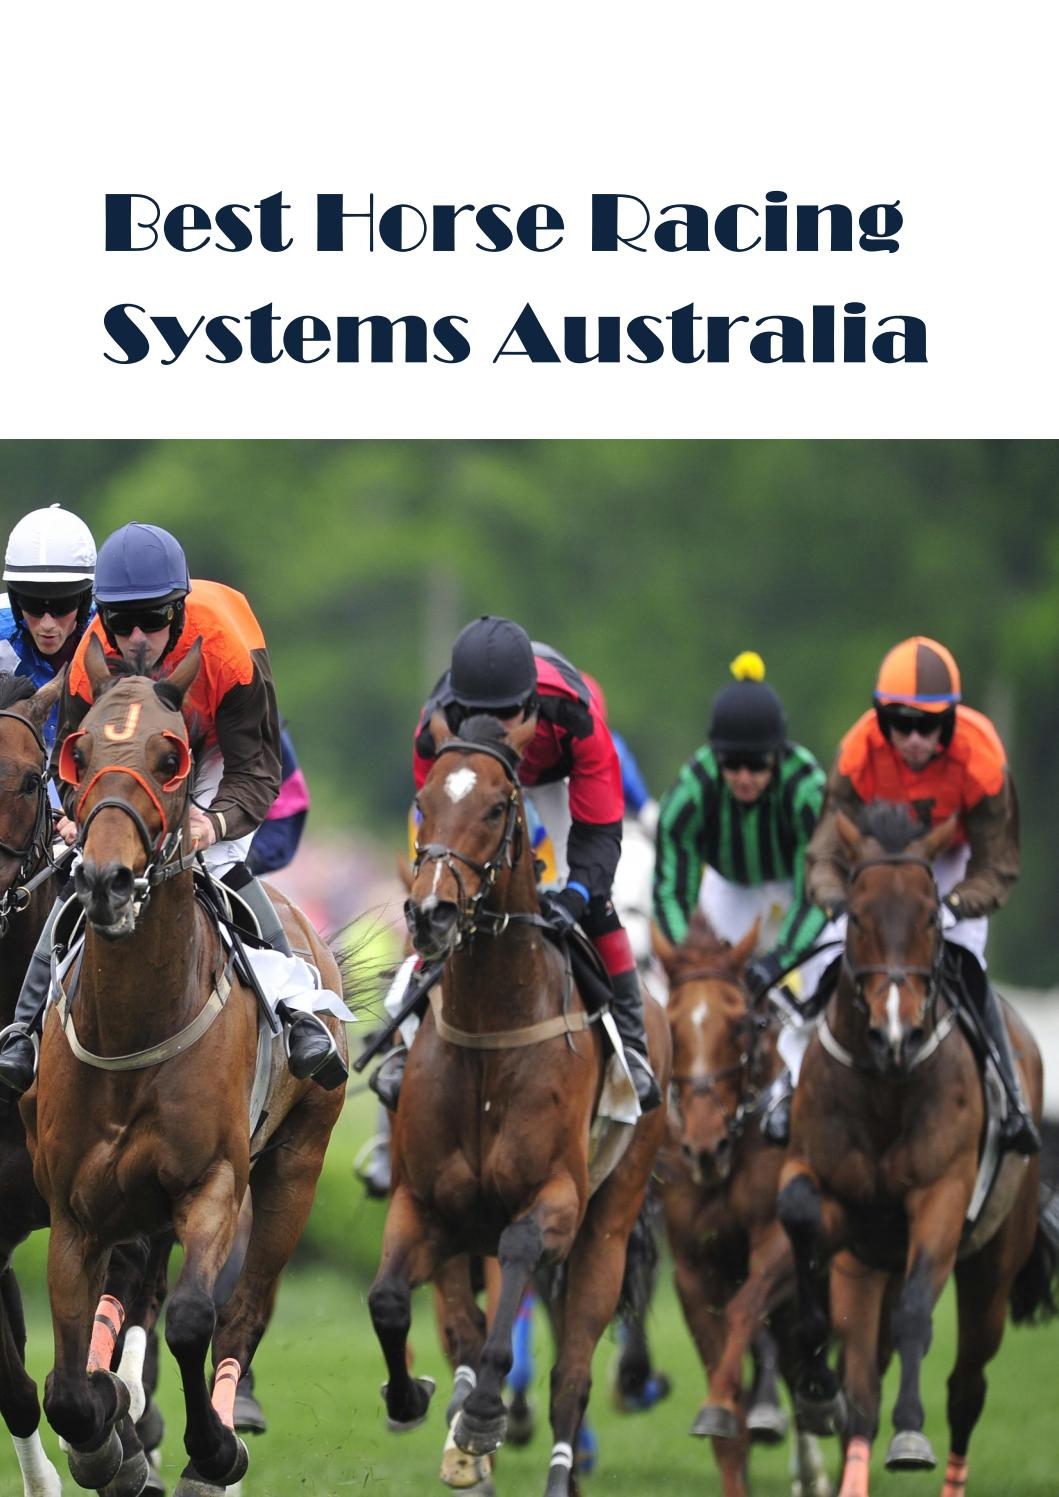 Best horse racing systems australia by toteraiderau - issuu